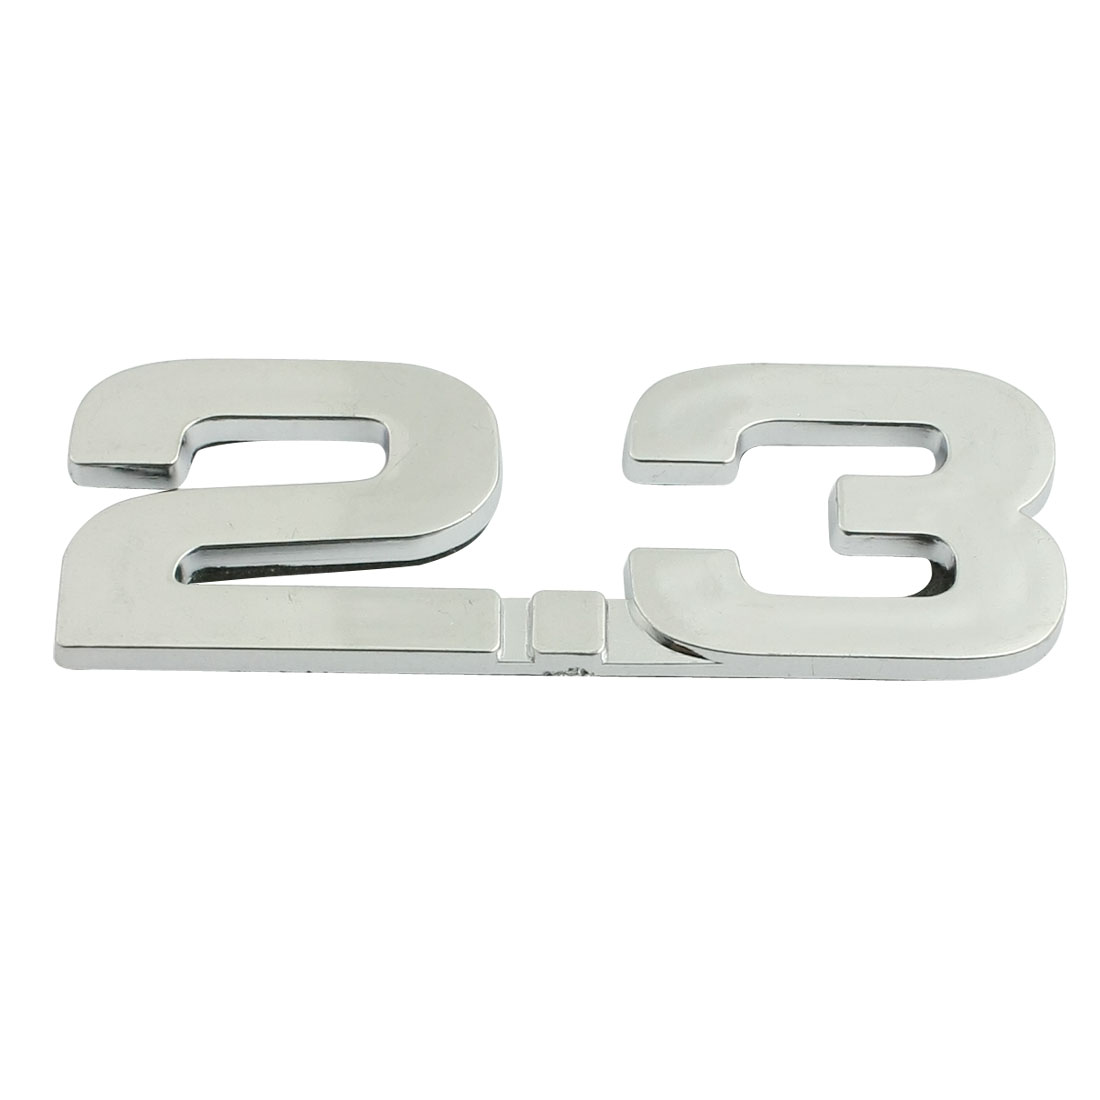 Silver Tone Alloy 2.3 Pattern Car Decorative Emblem Badge Sticker